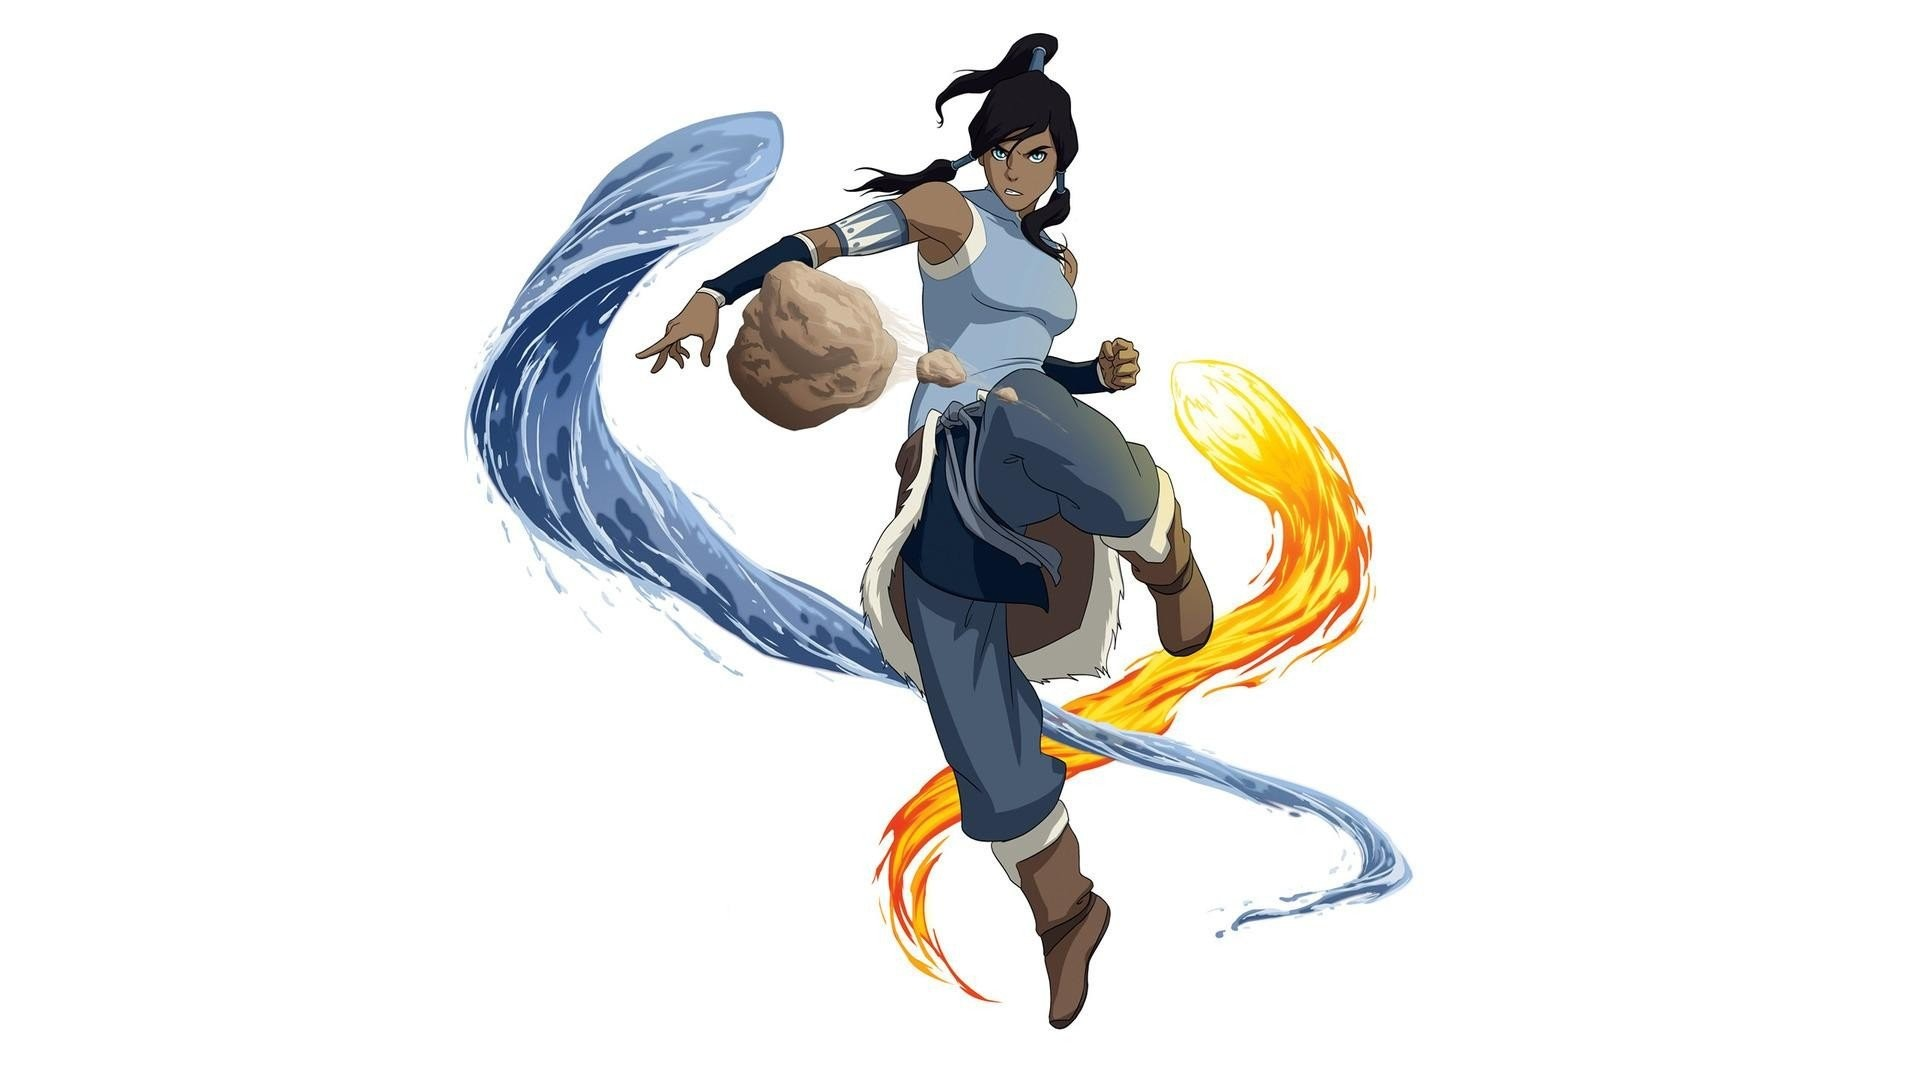 1920x1080 Simple background Korra Avatar: The Legend of Korra wallpaper |  |  299202 | WallpaperUP